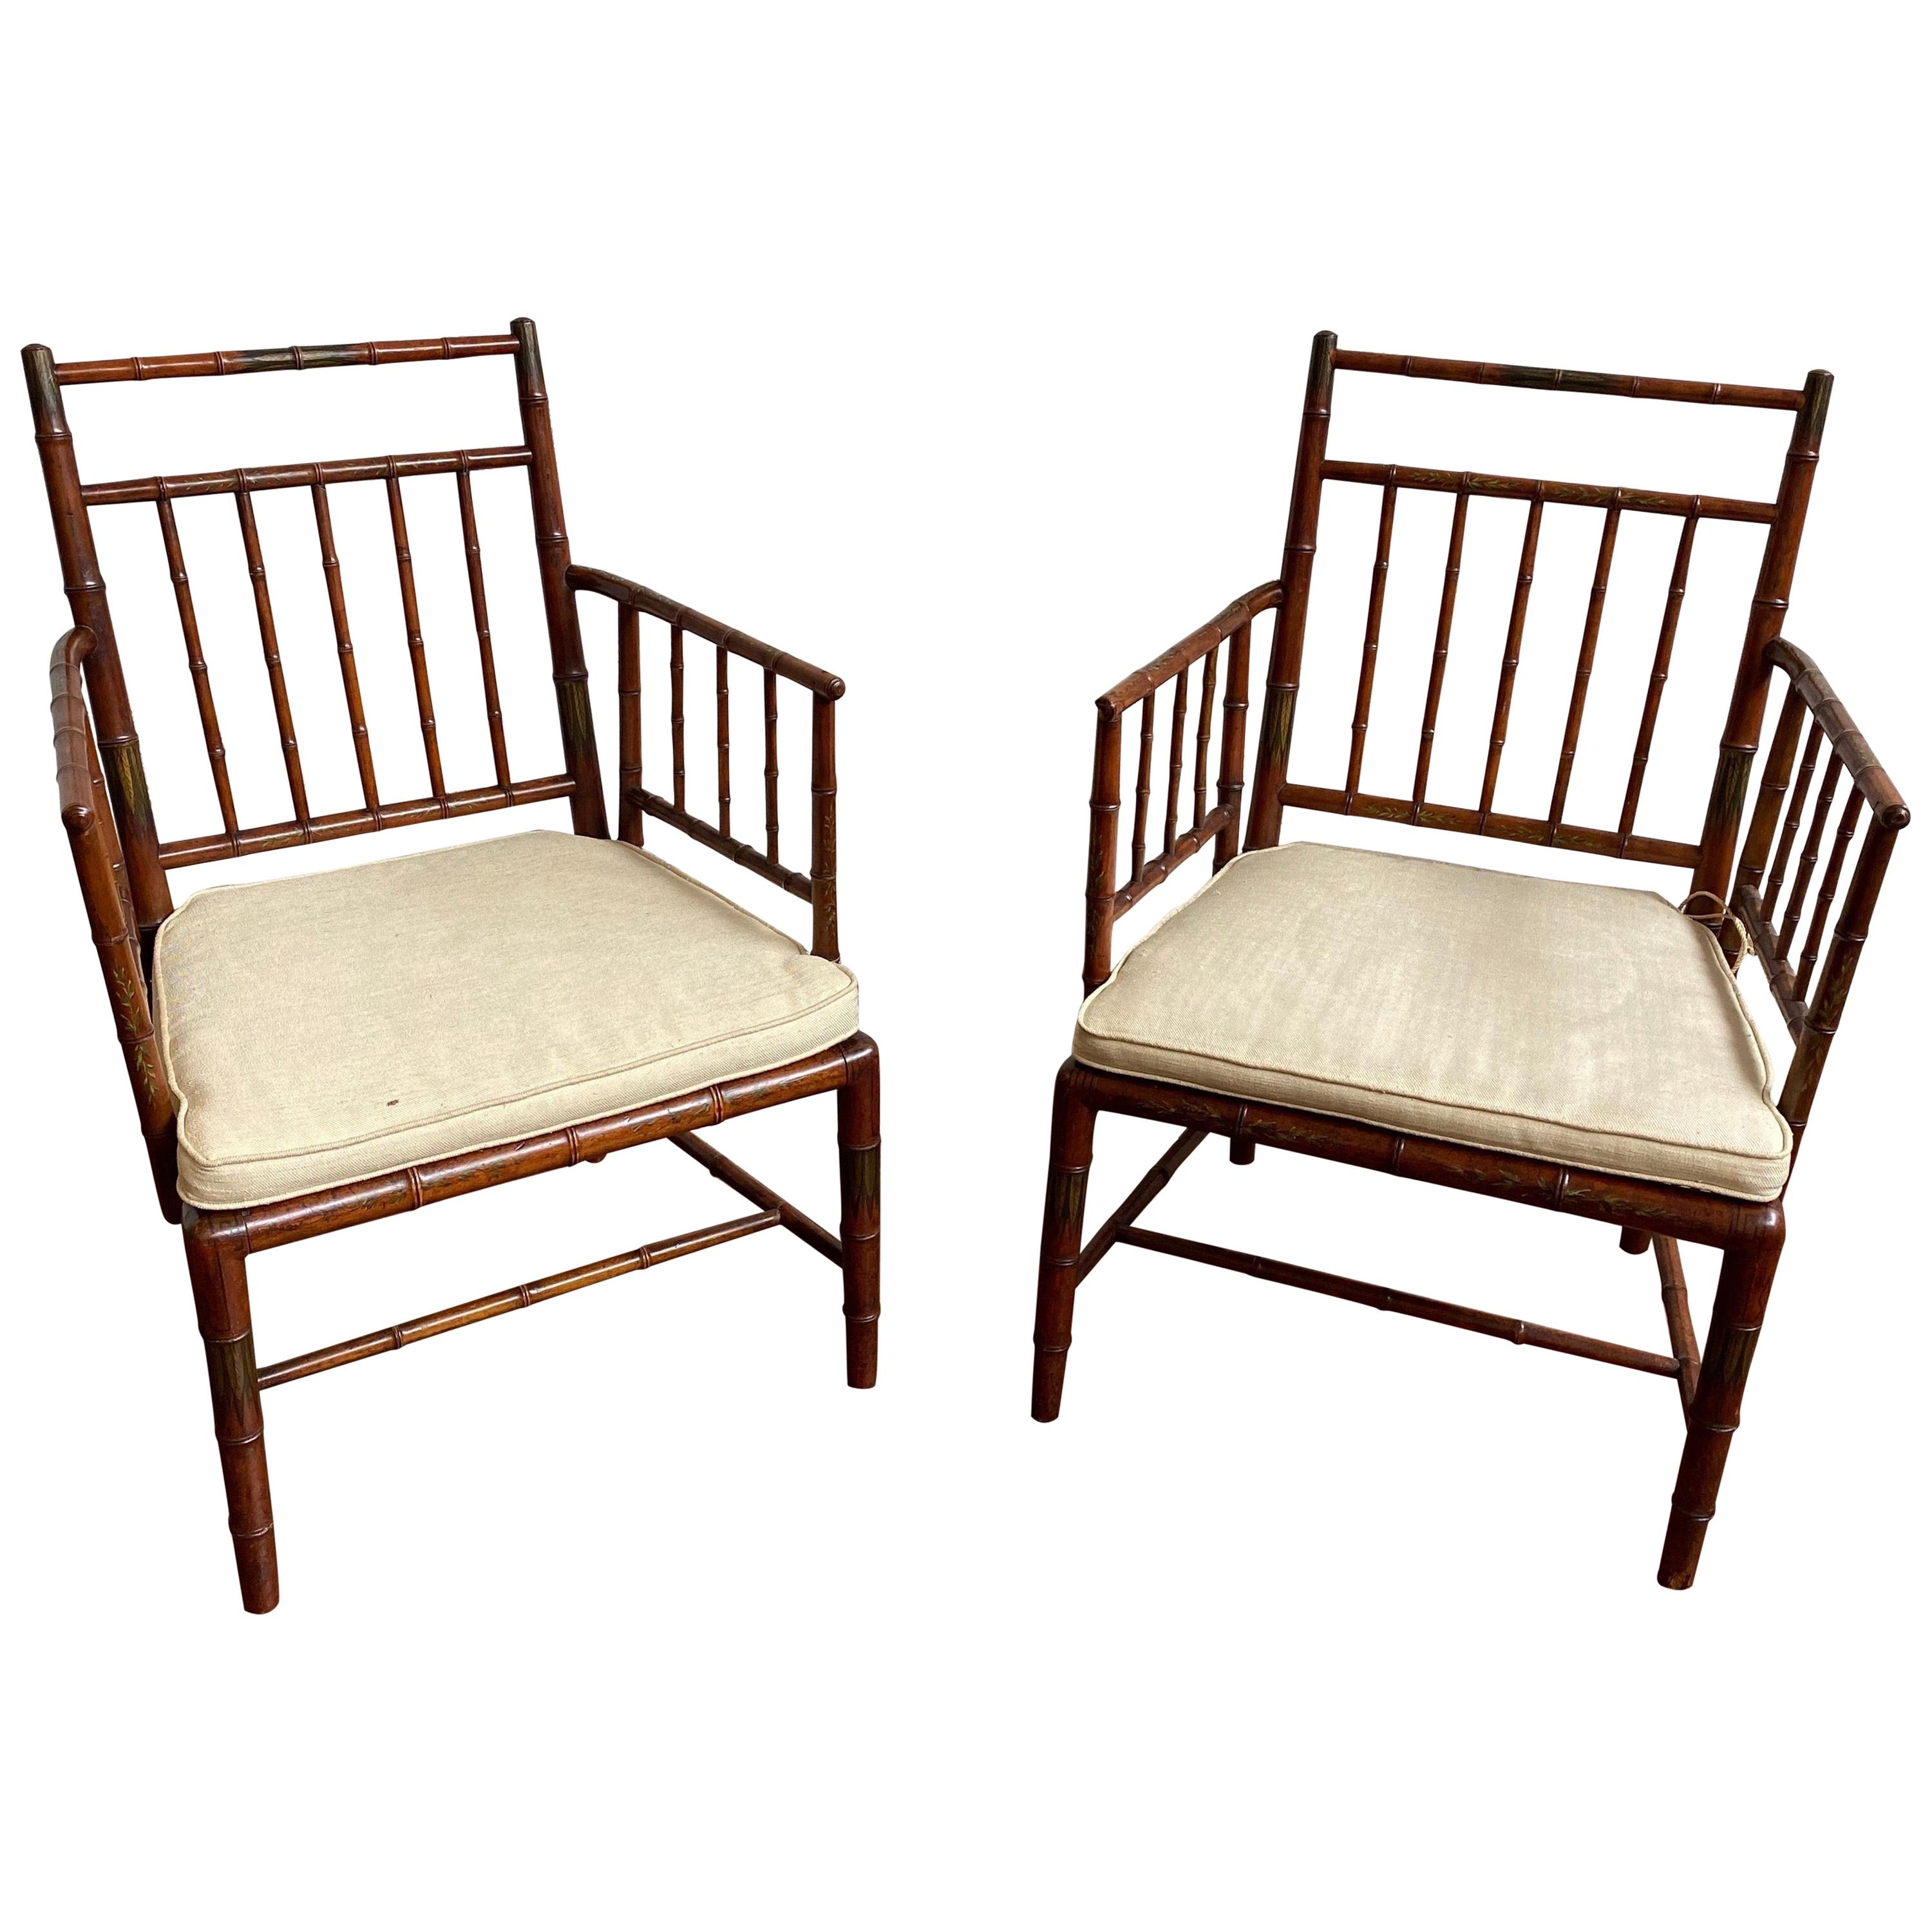 Incredible Pair of Faux Bamboo Chairs with Polychrome Paint Decoration